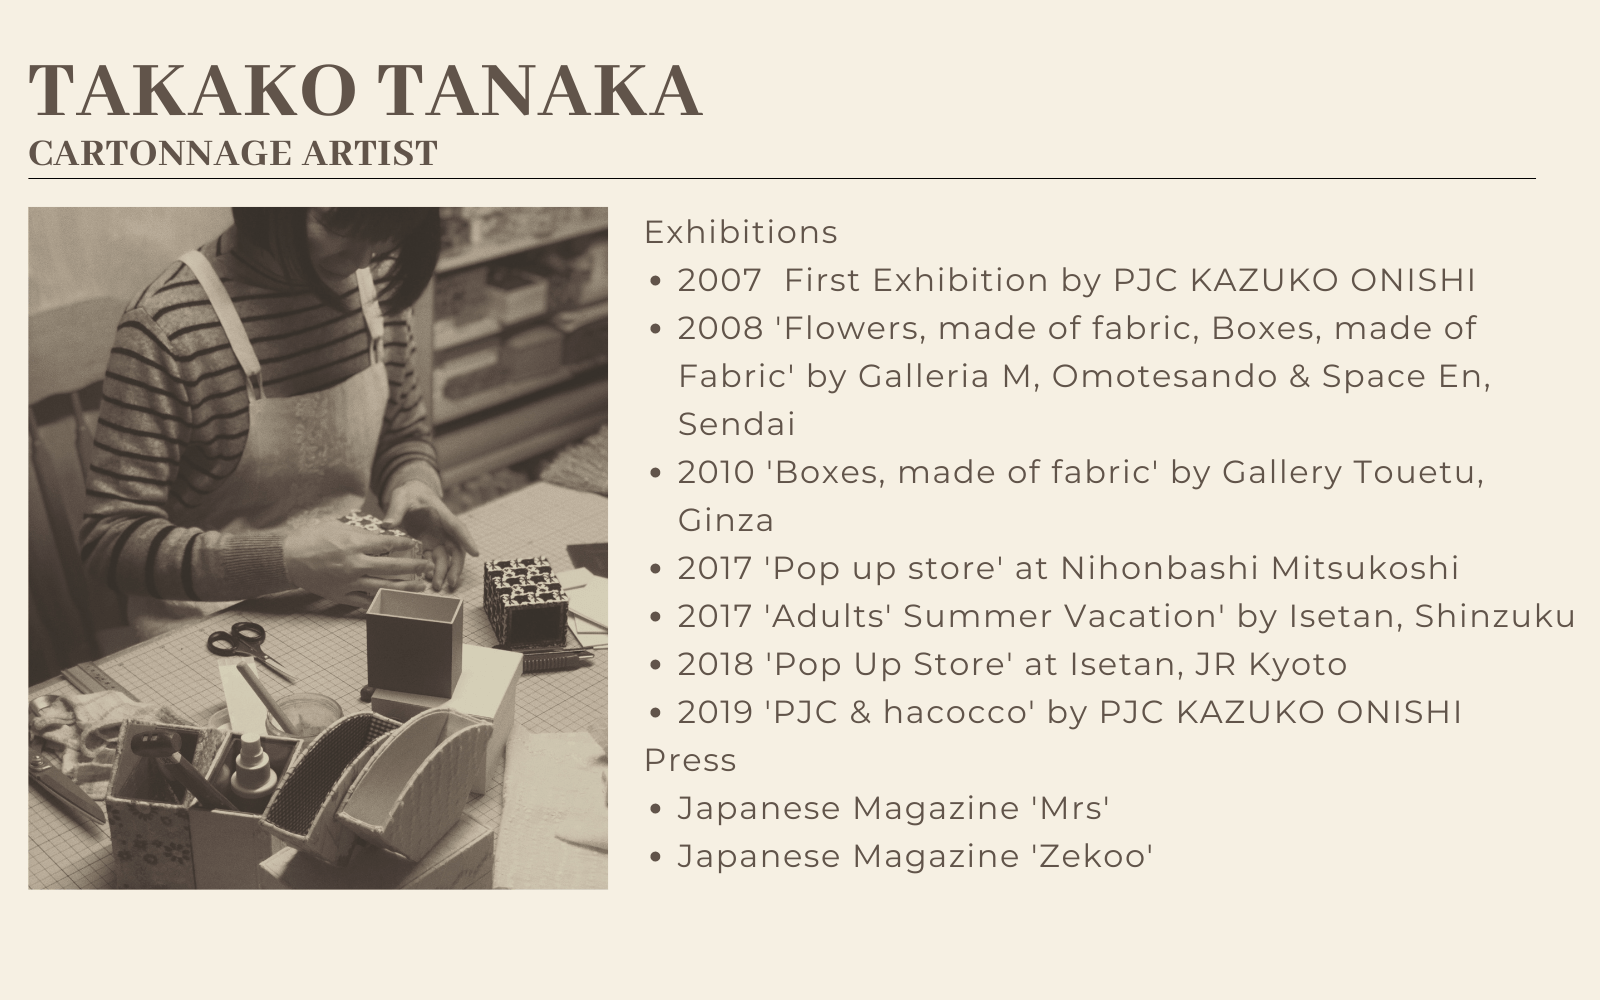 takako tanaka cartonnage artist introduction